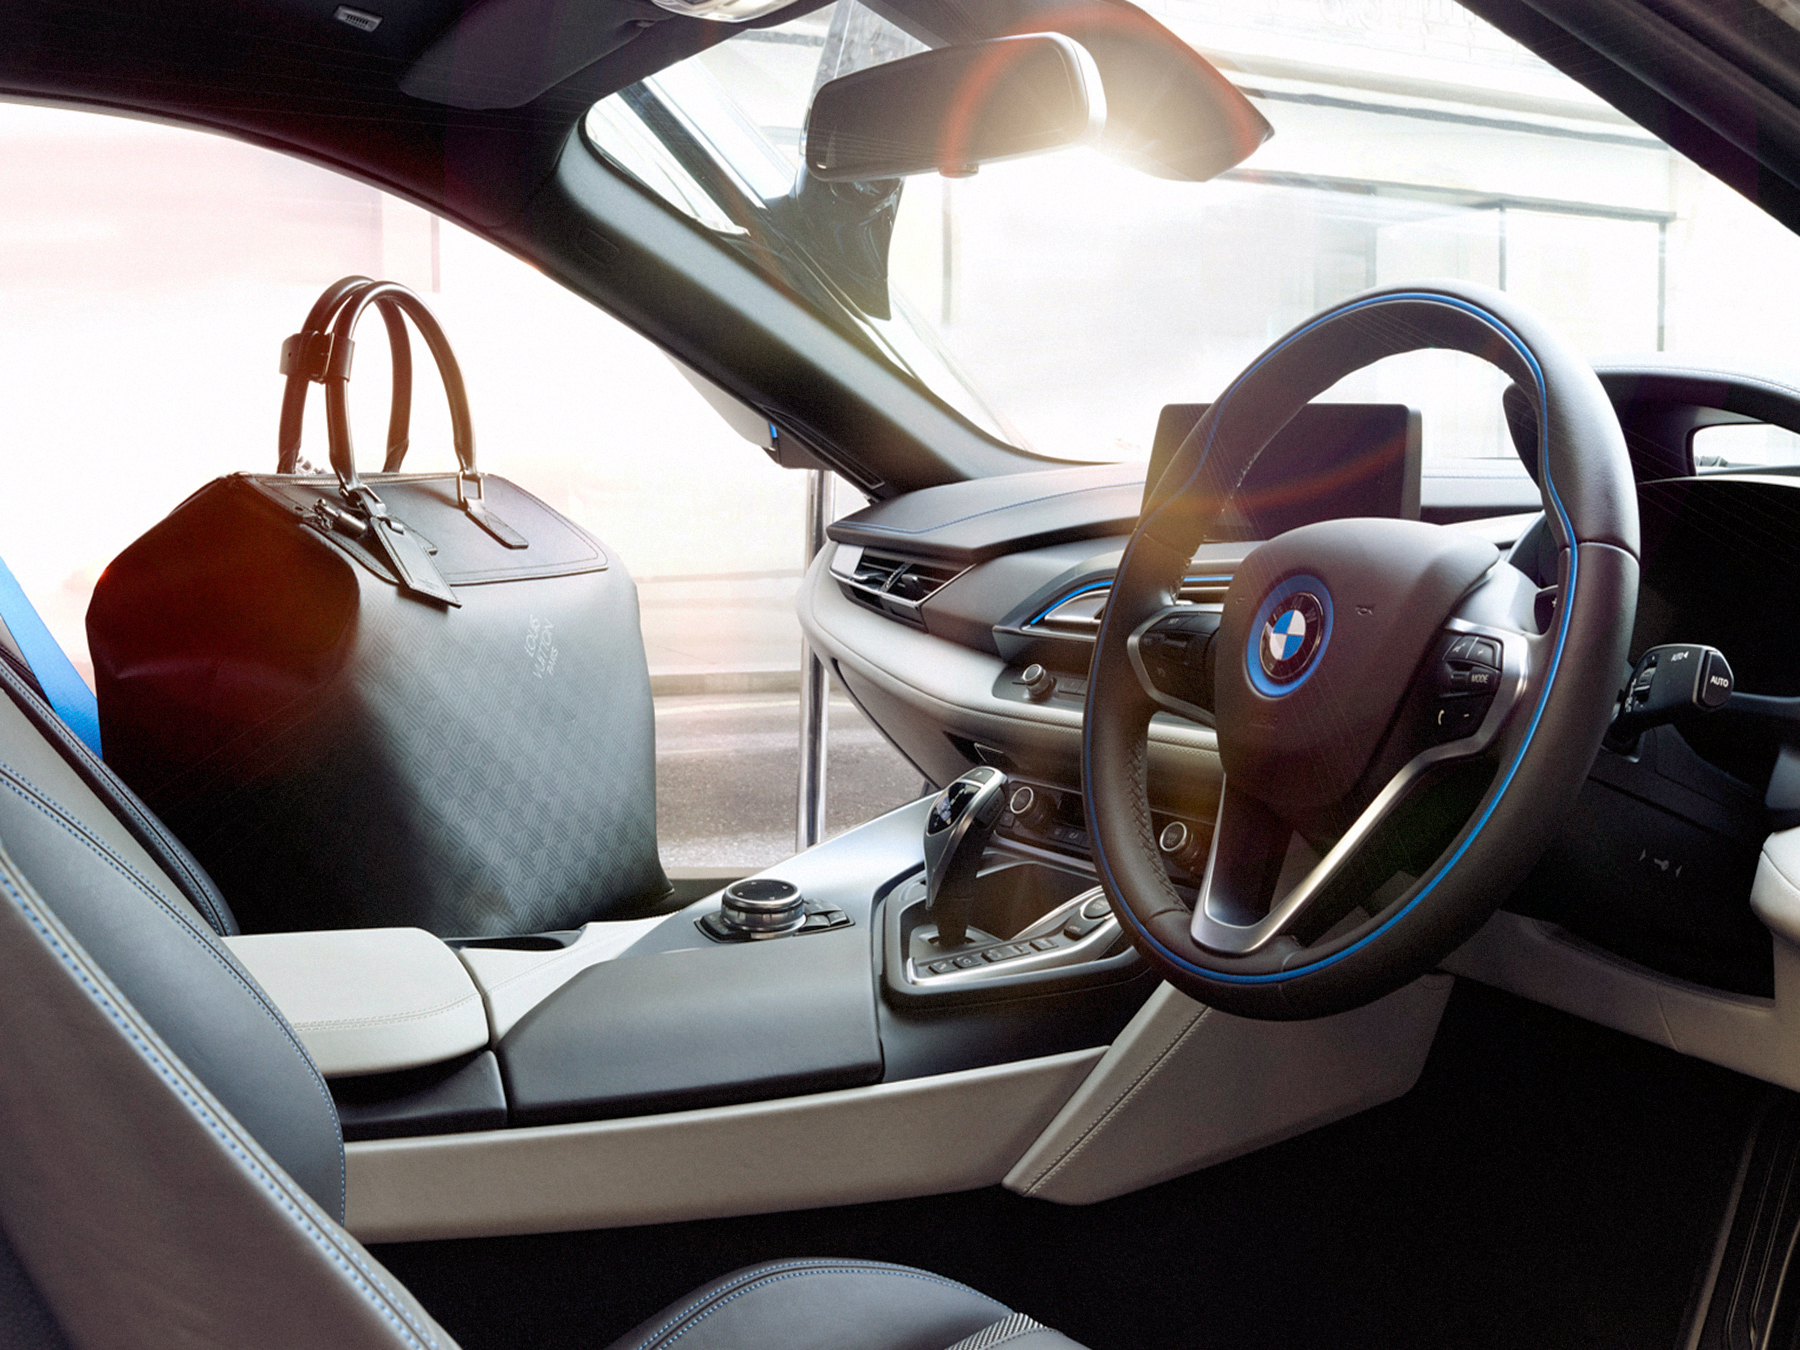 LV_BMW_Still-life_Finals-7007.jpg